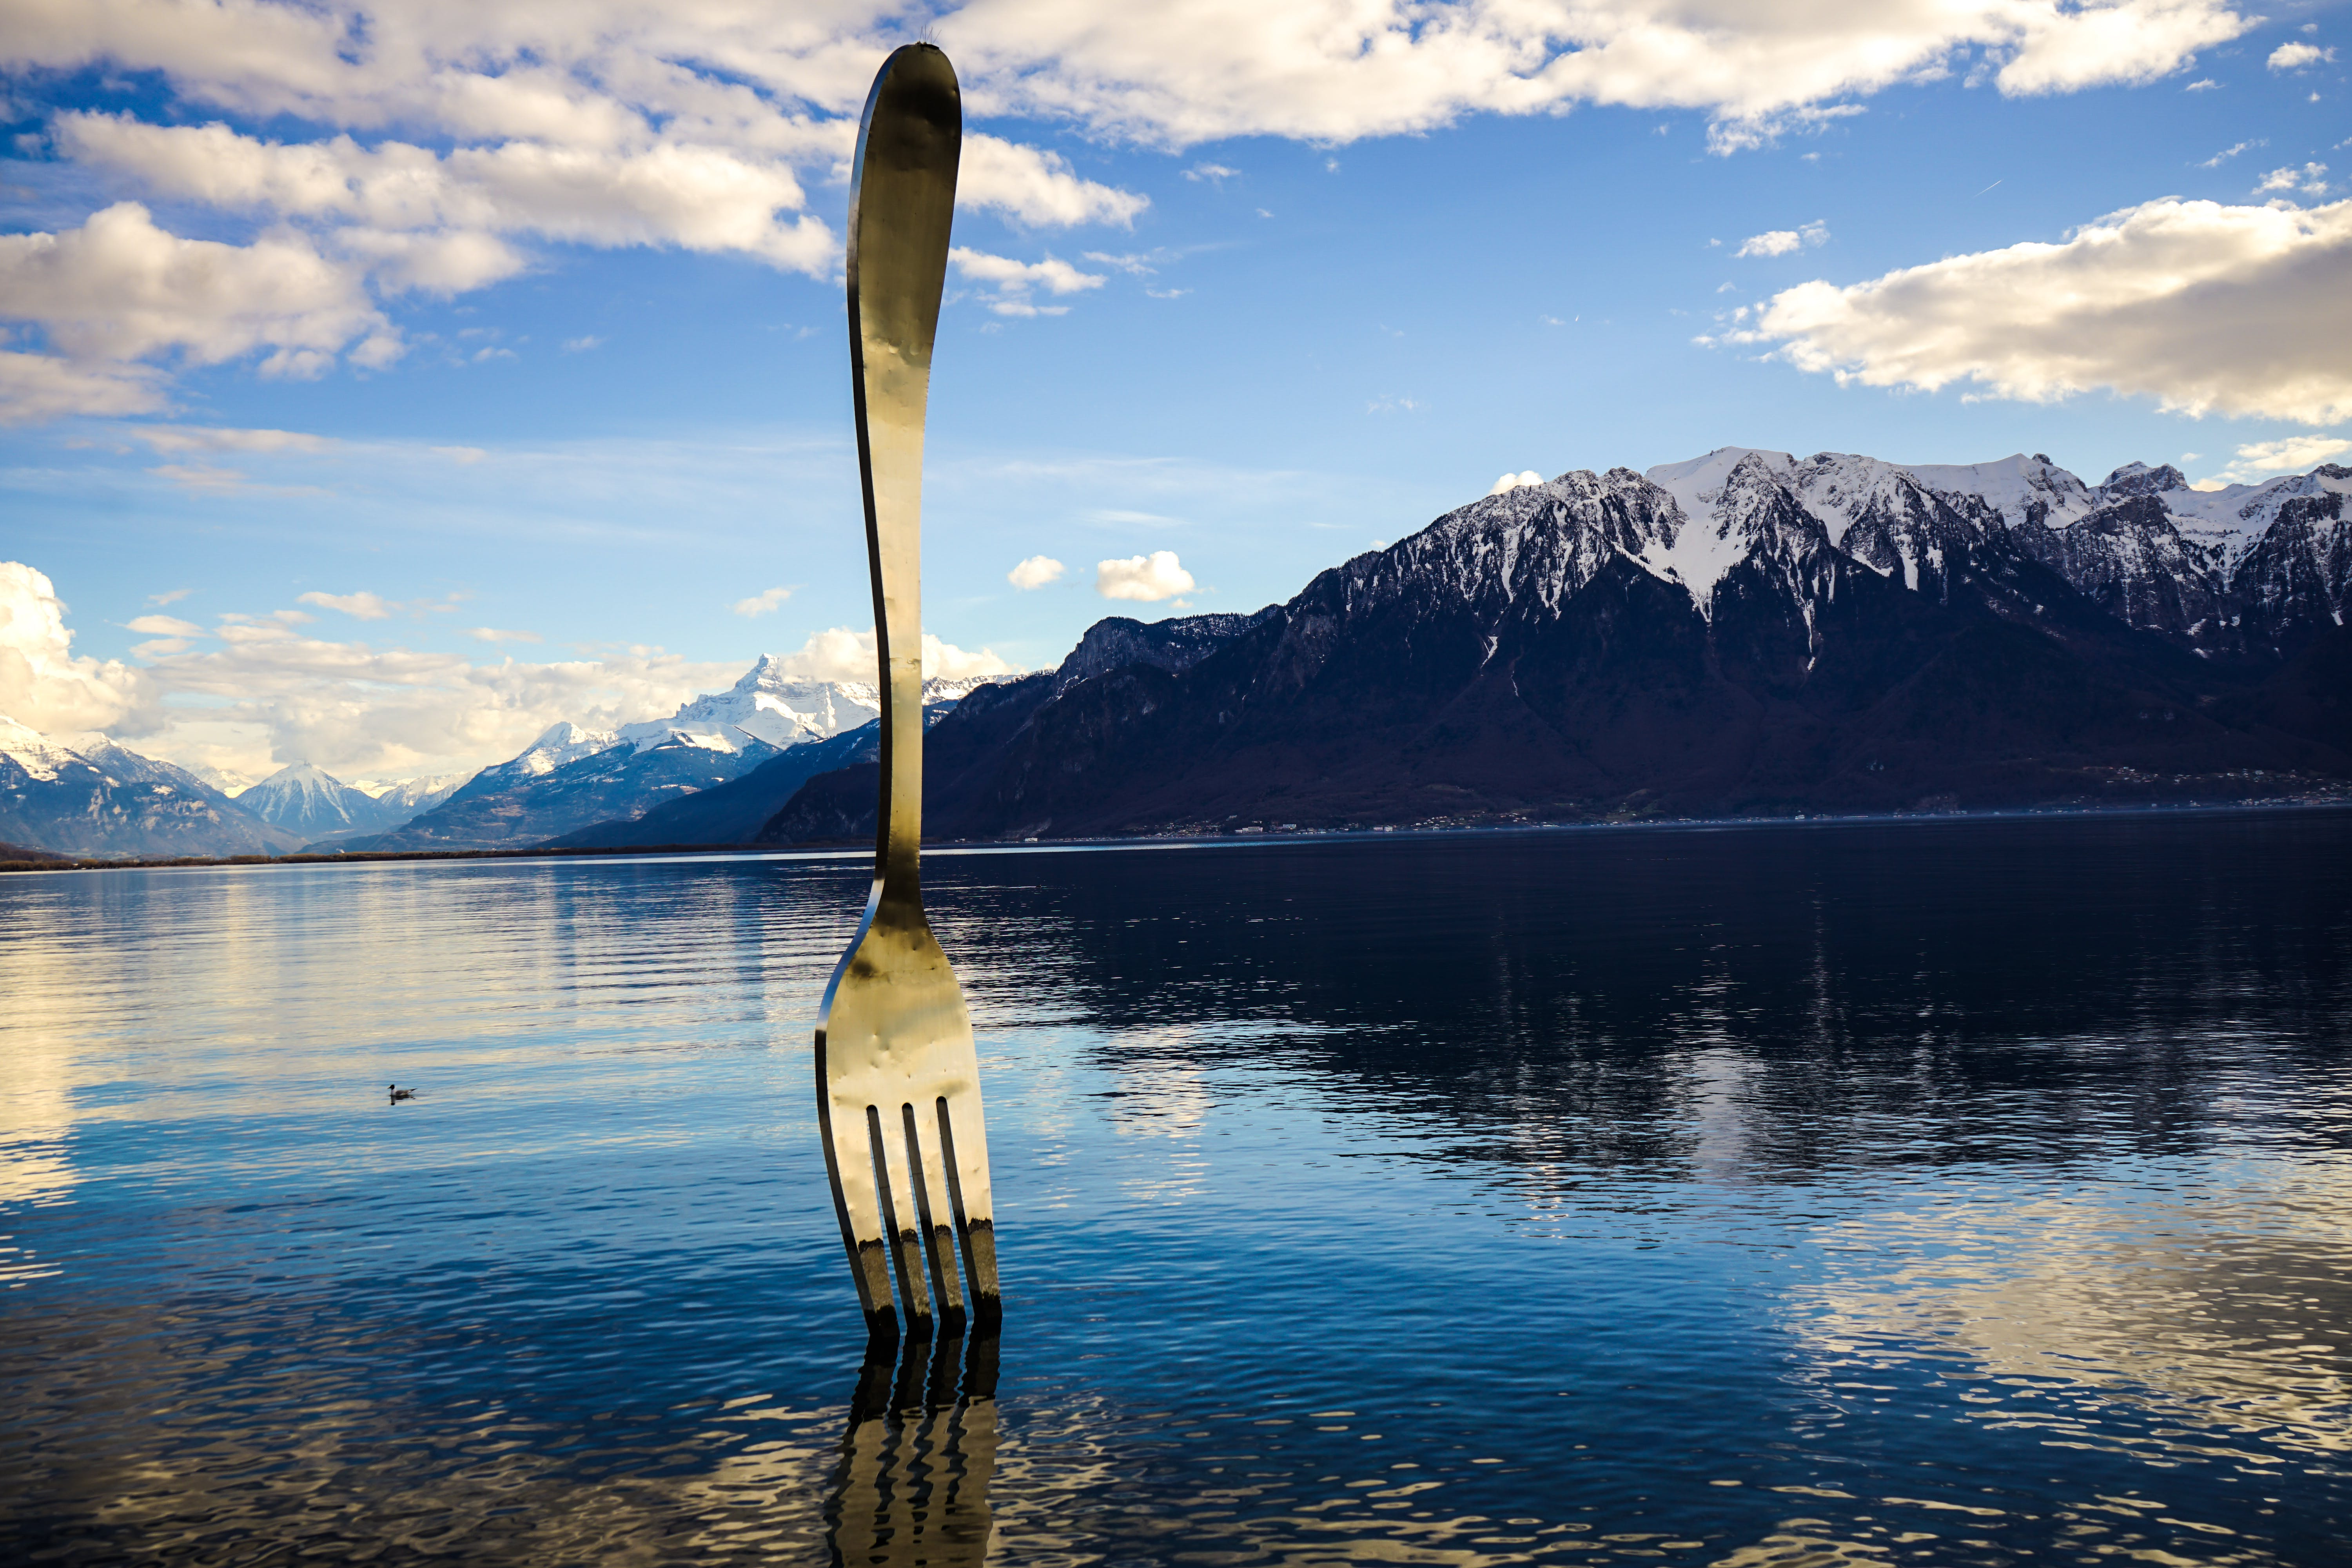 Gray Stainless Steel Fork on Water With Overlooking Mountain at Daytime